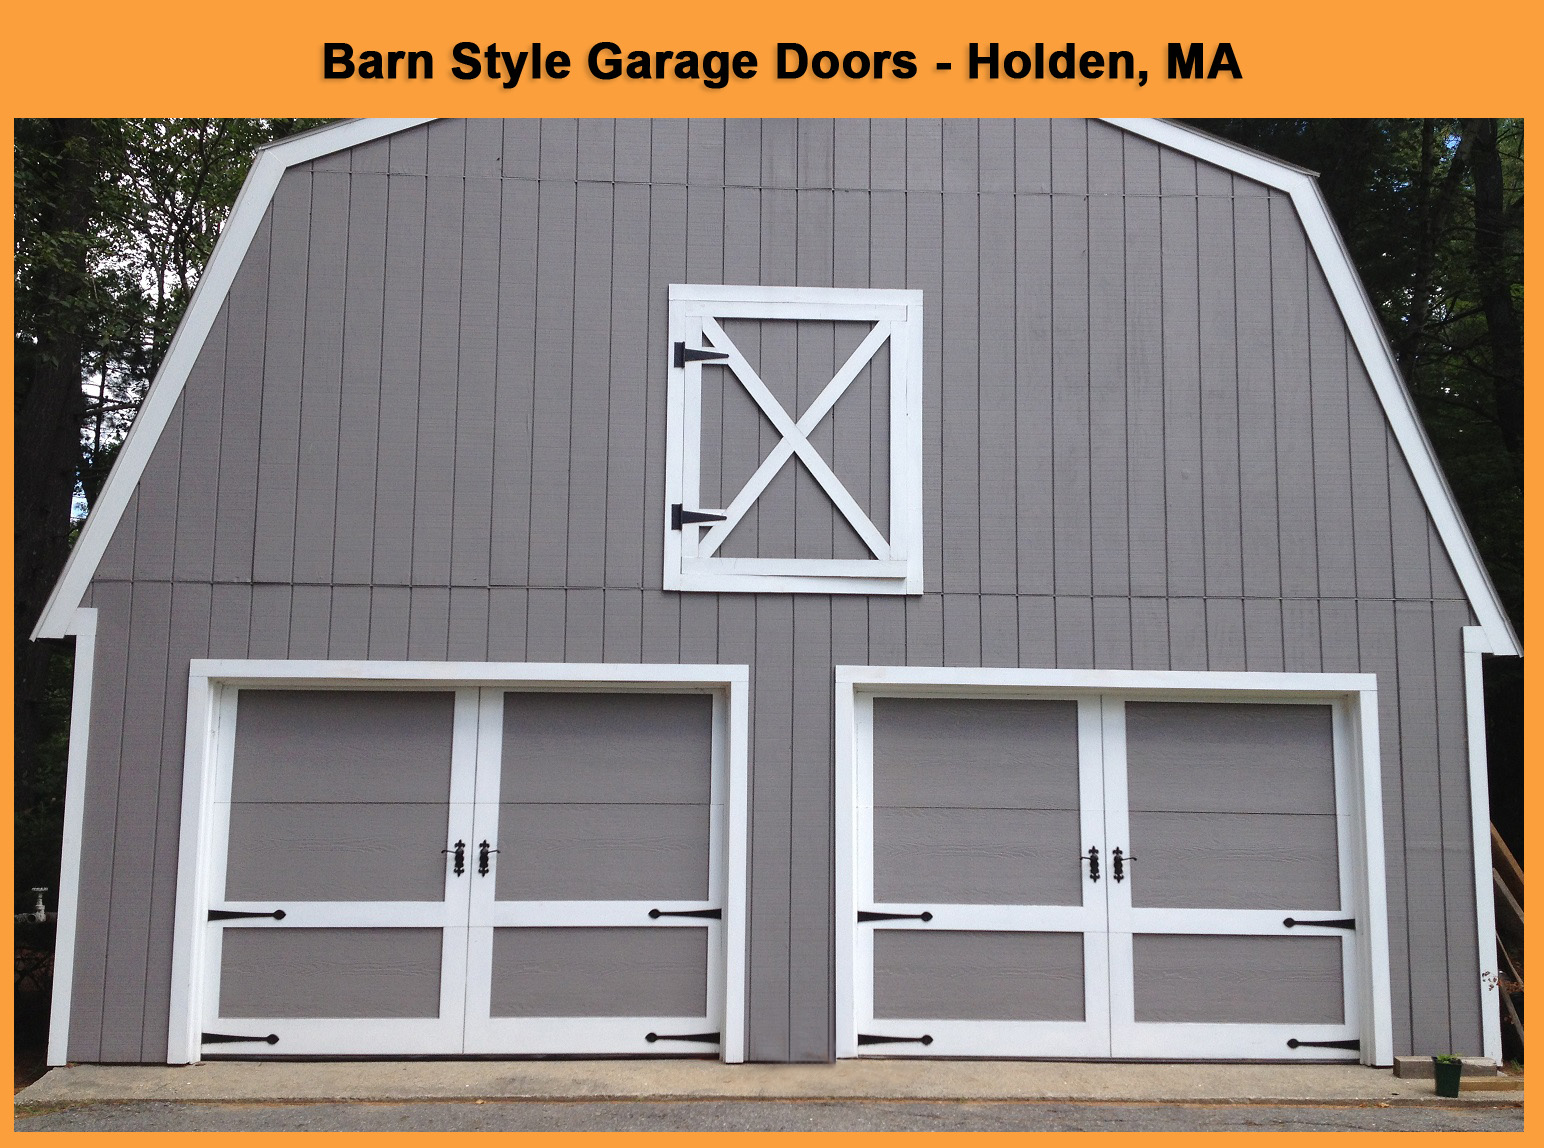 New barn style garage doors install in holden ma for Barn style garages